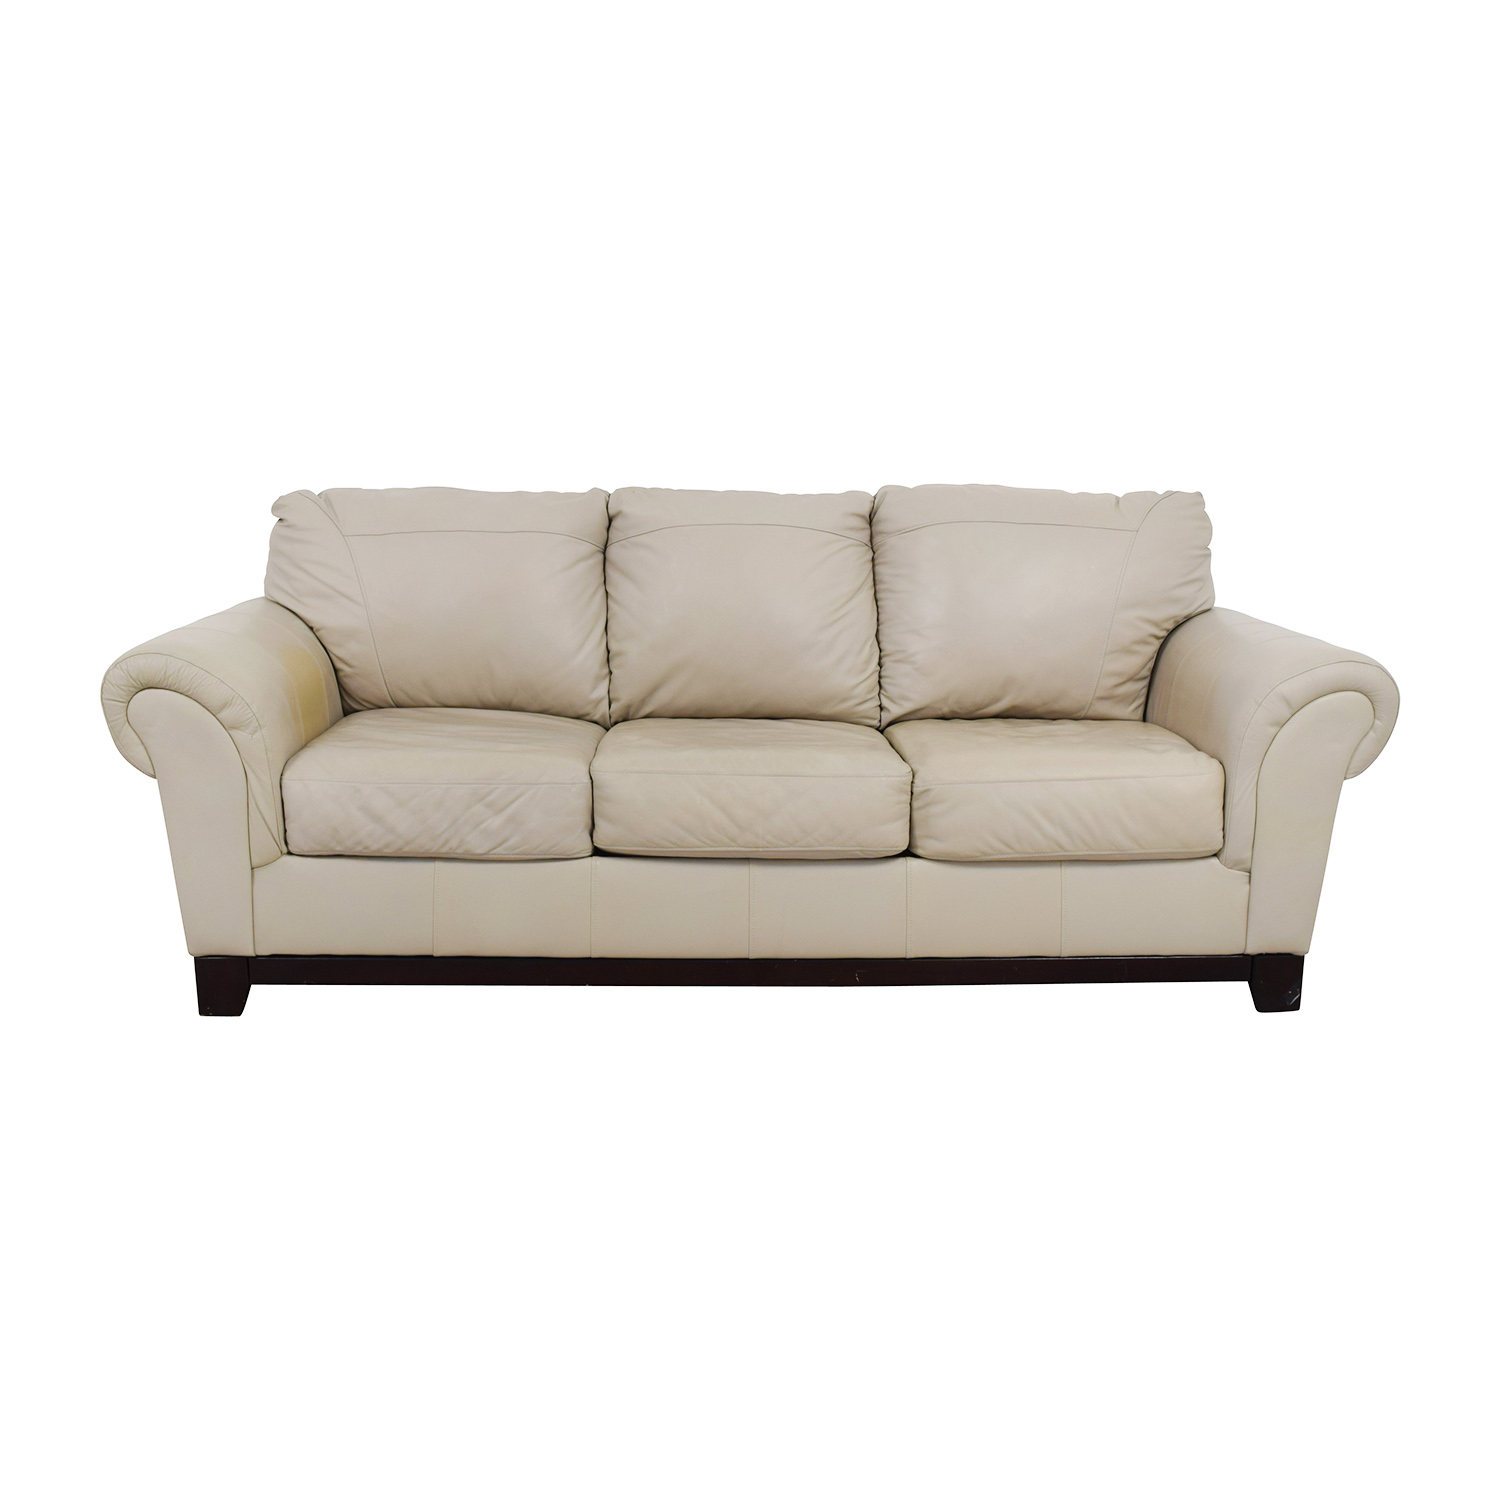 Taupe Leather Couch used